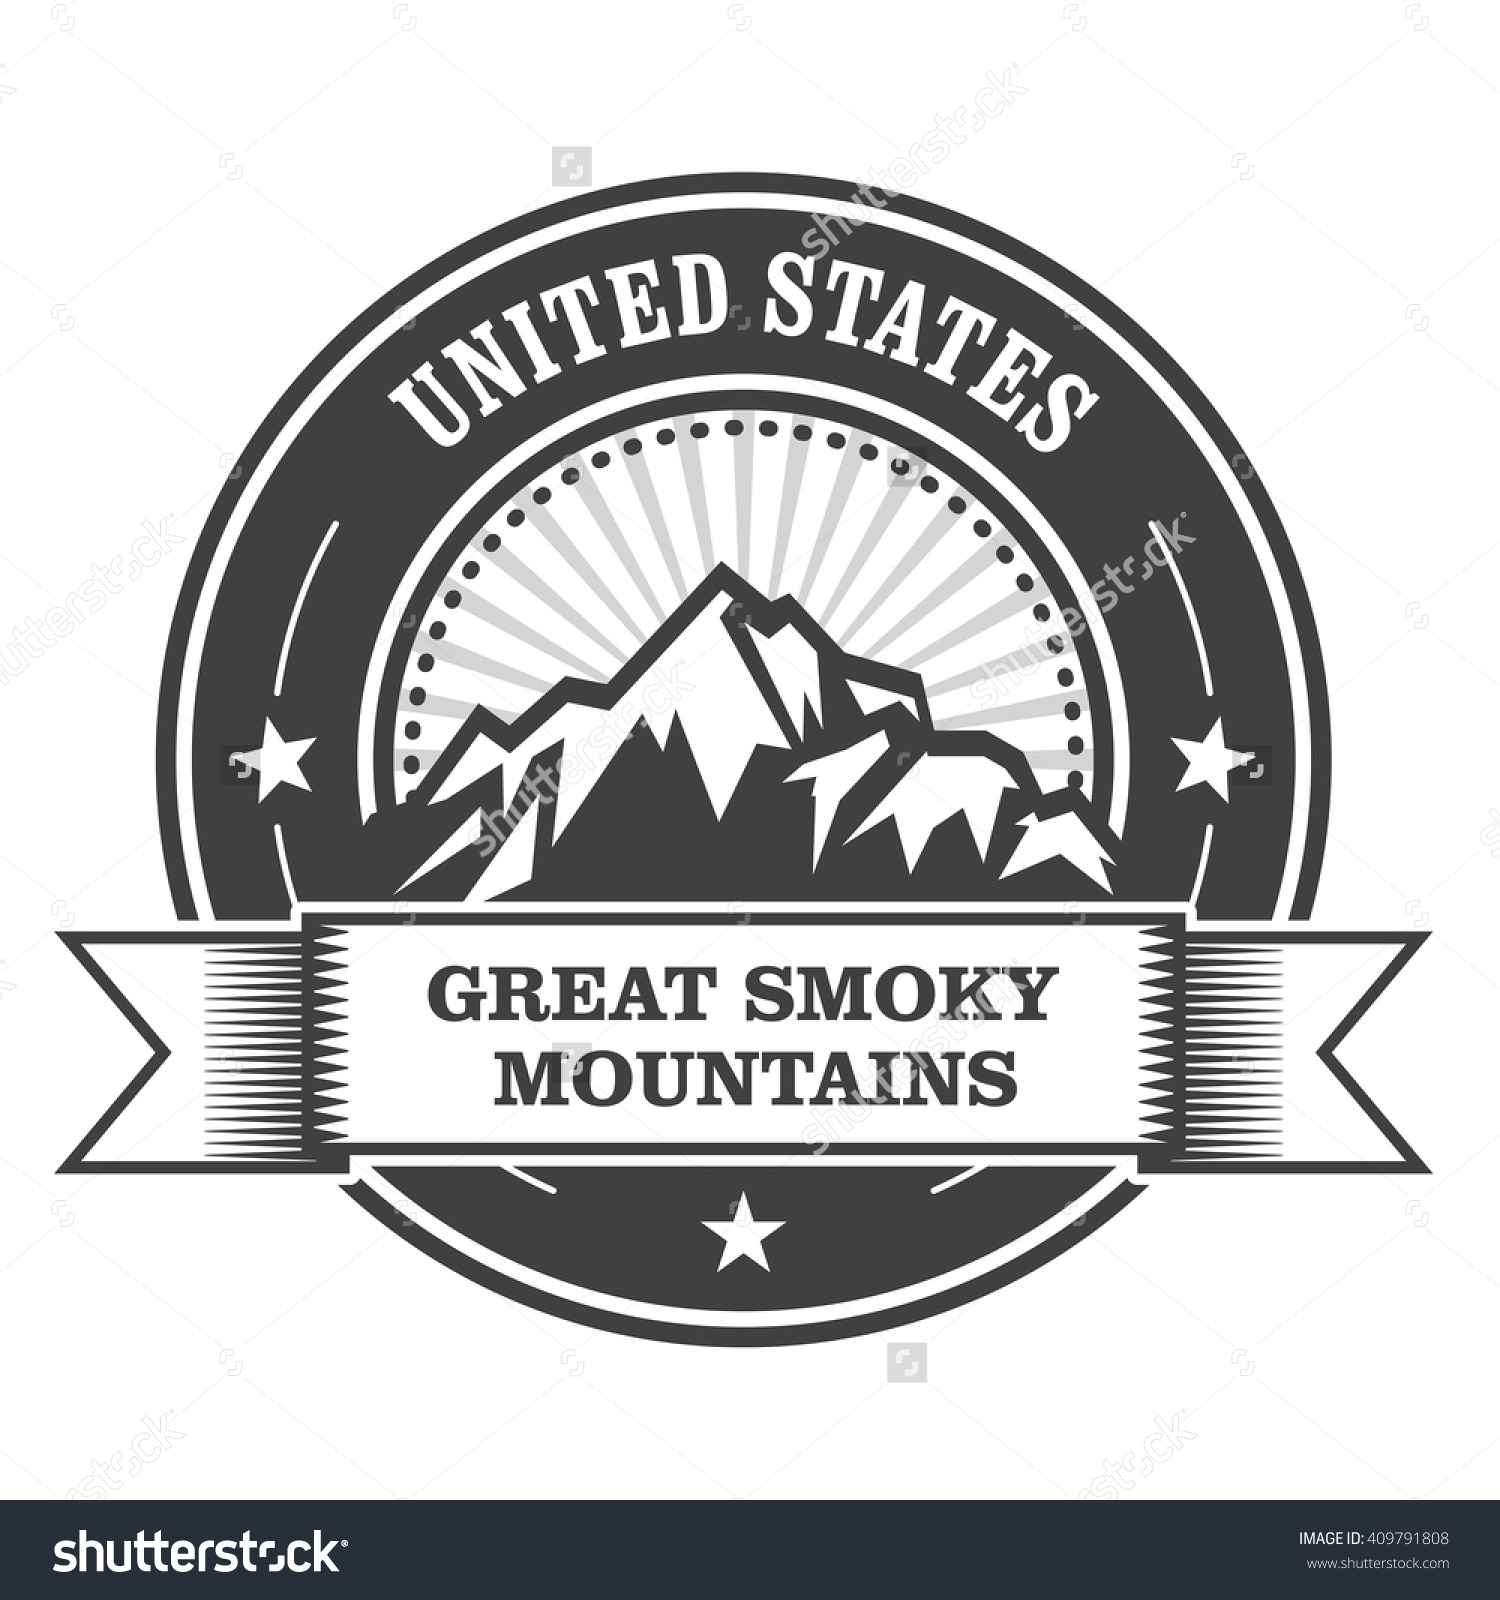 Smoky Mountains clipart #5, Download drawings